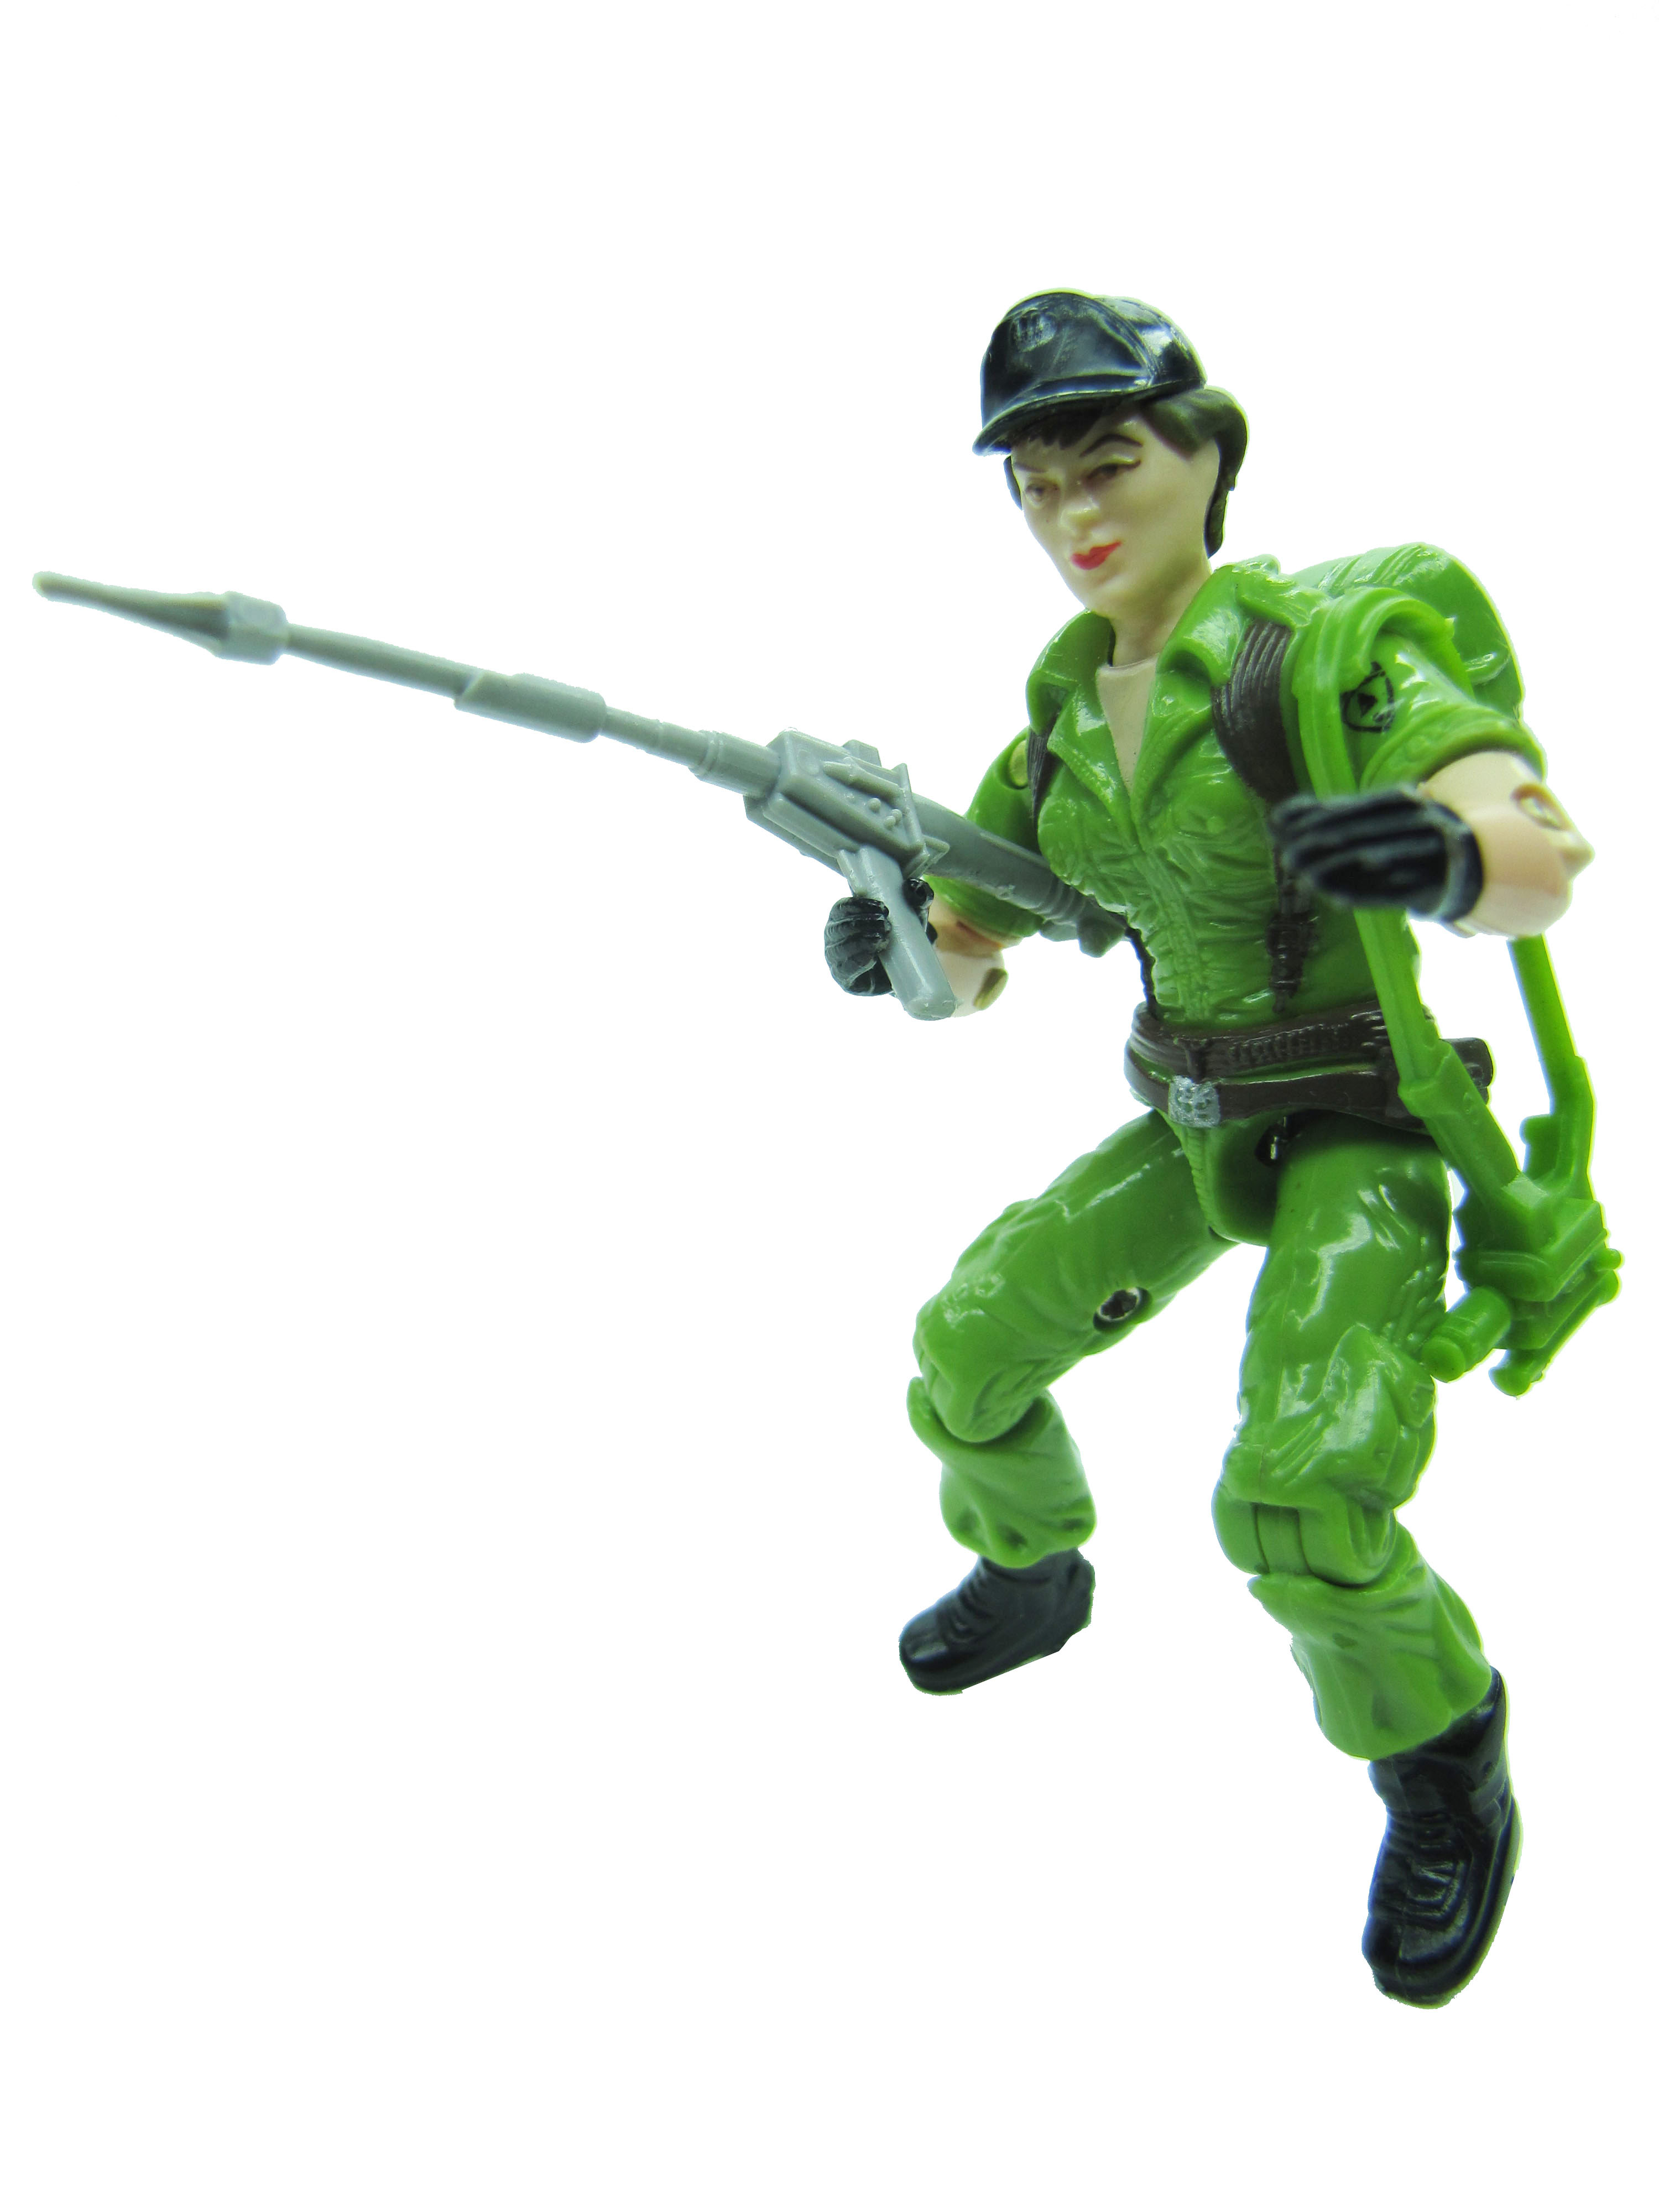 1985 GIJoe LADY JAYE COVERT OPERATIONS Complete